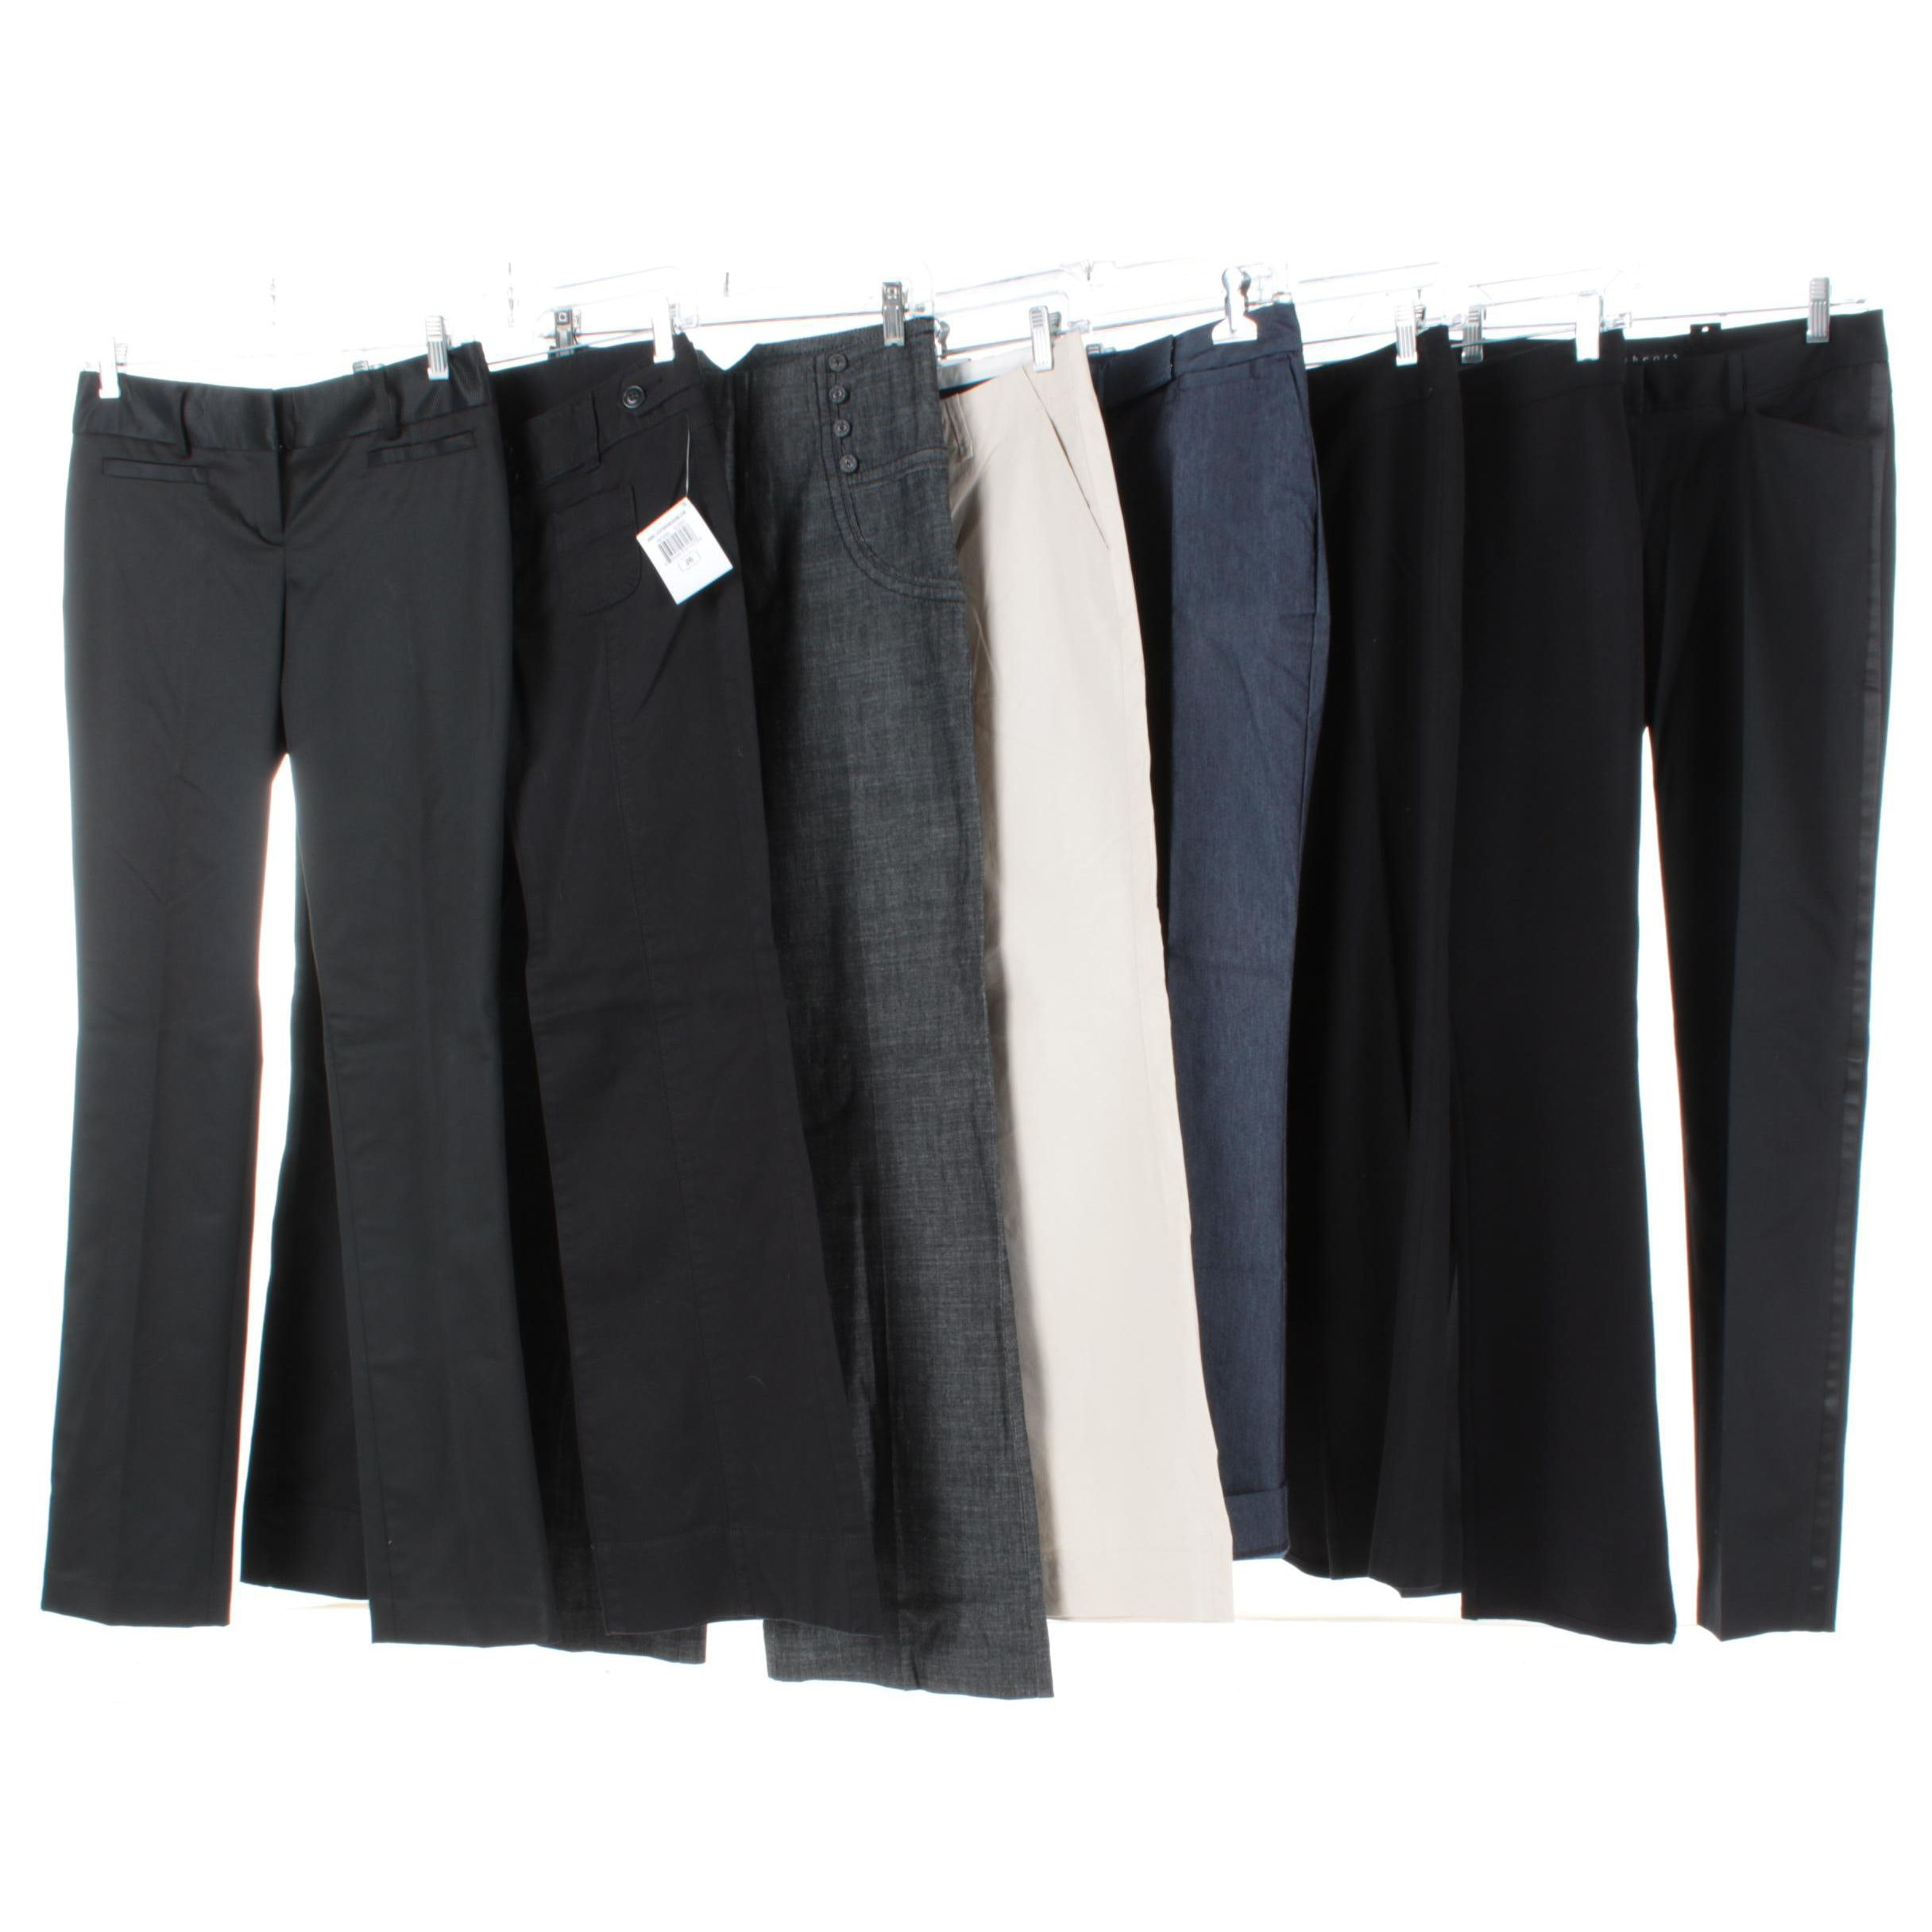 Women's Pants Including Theory, Lucky Brand and Isaac Mizrahi for Target